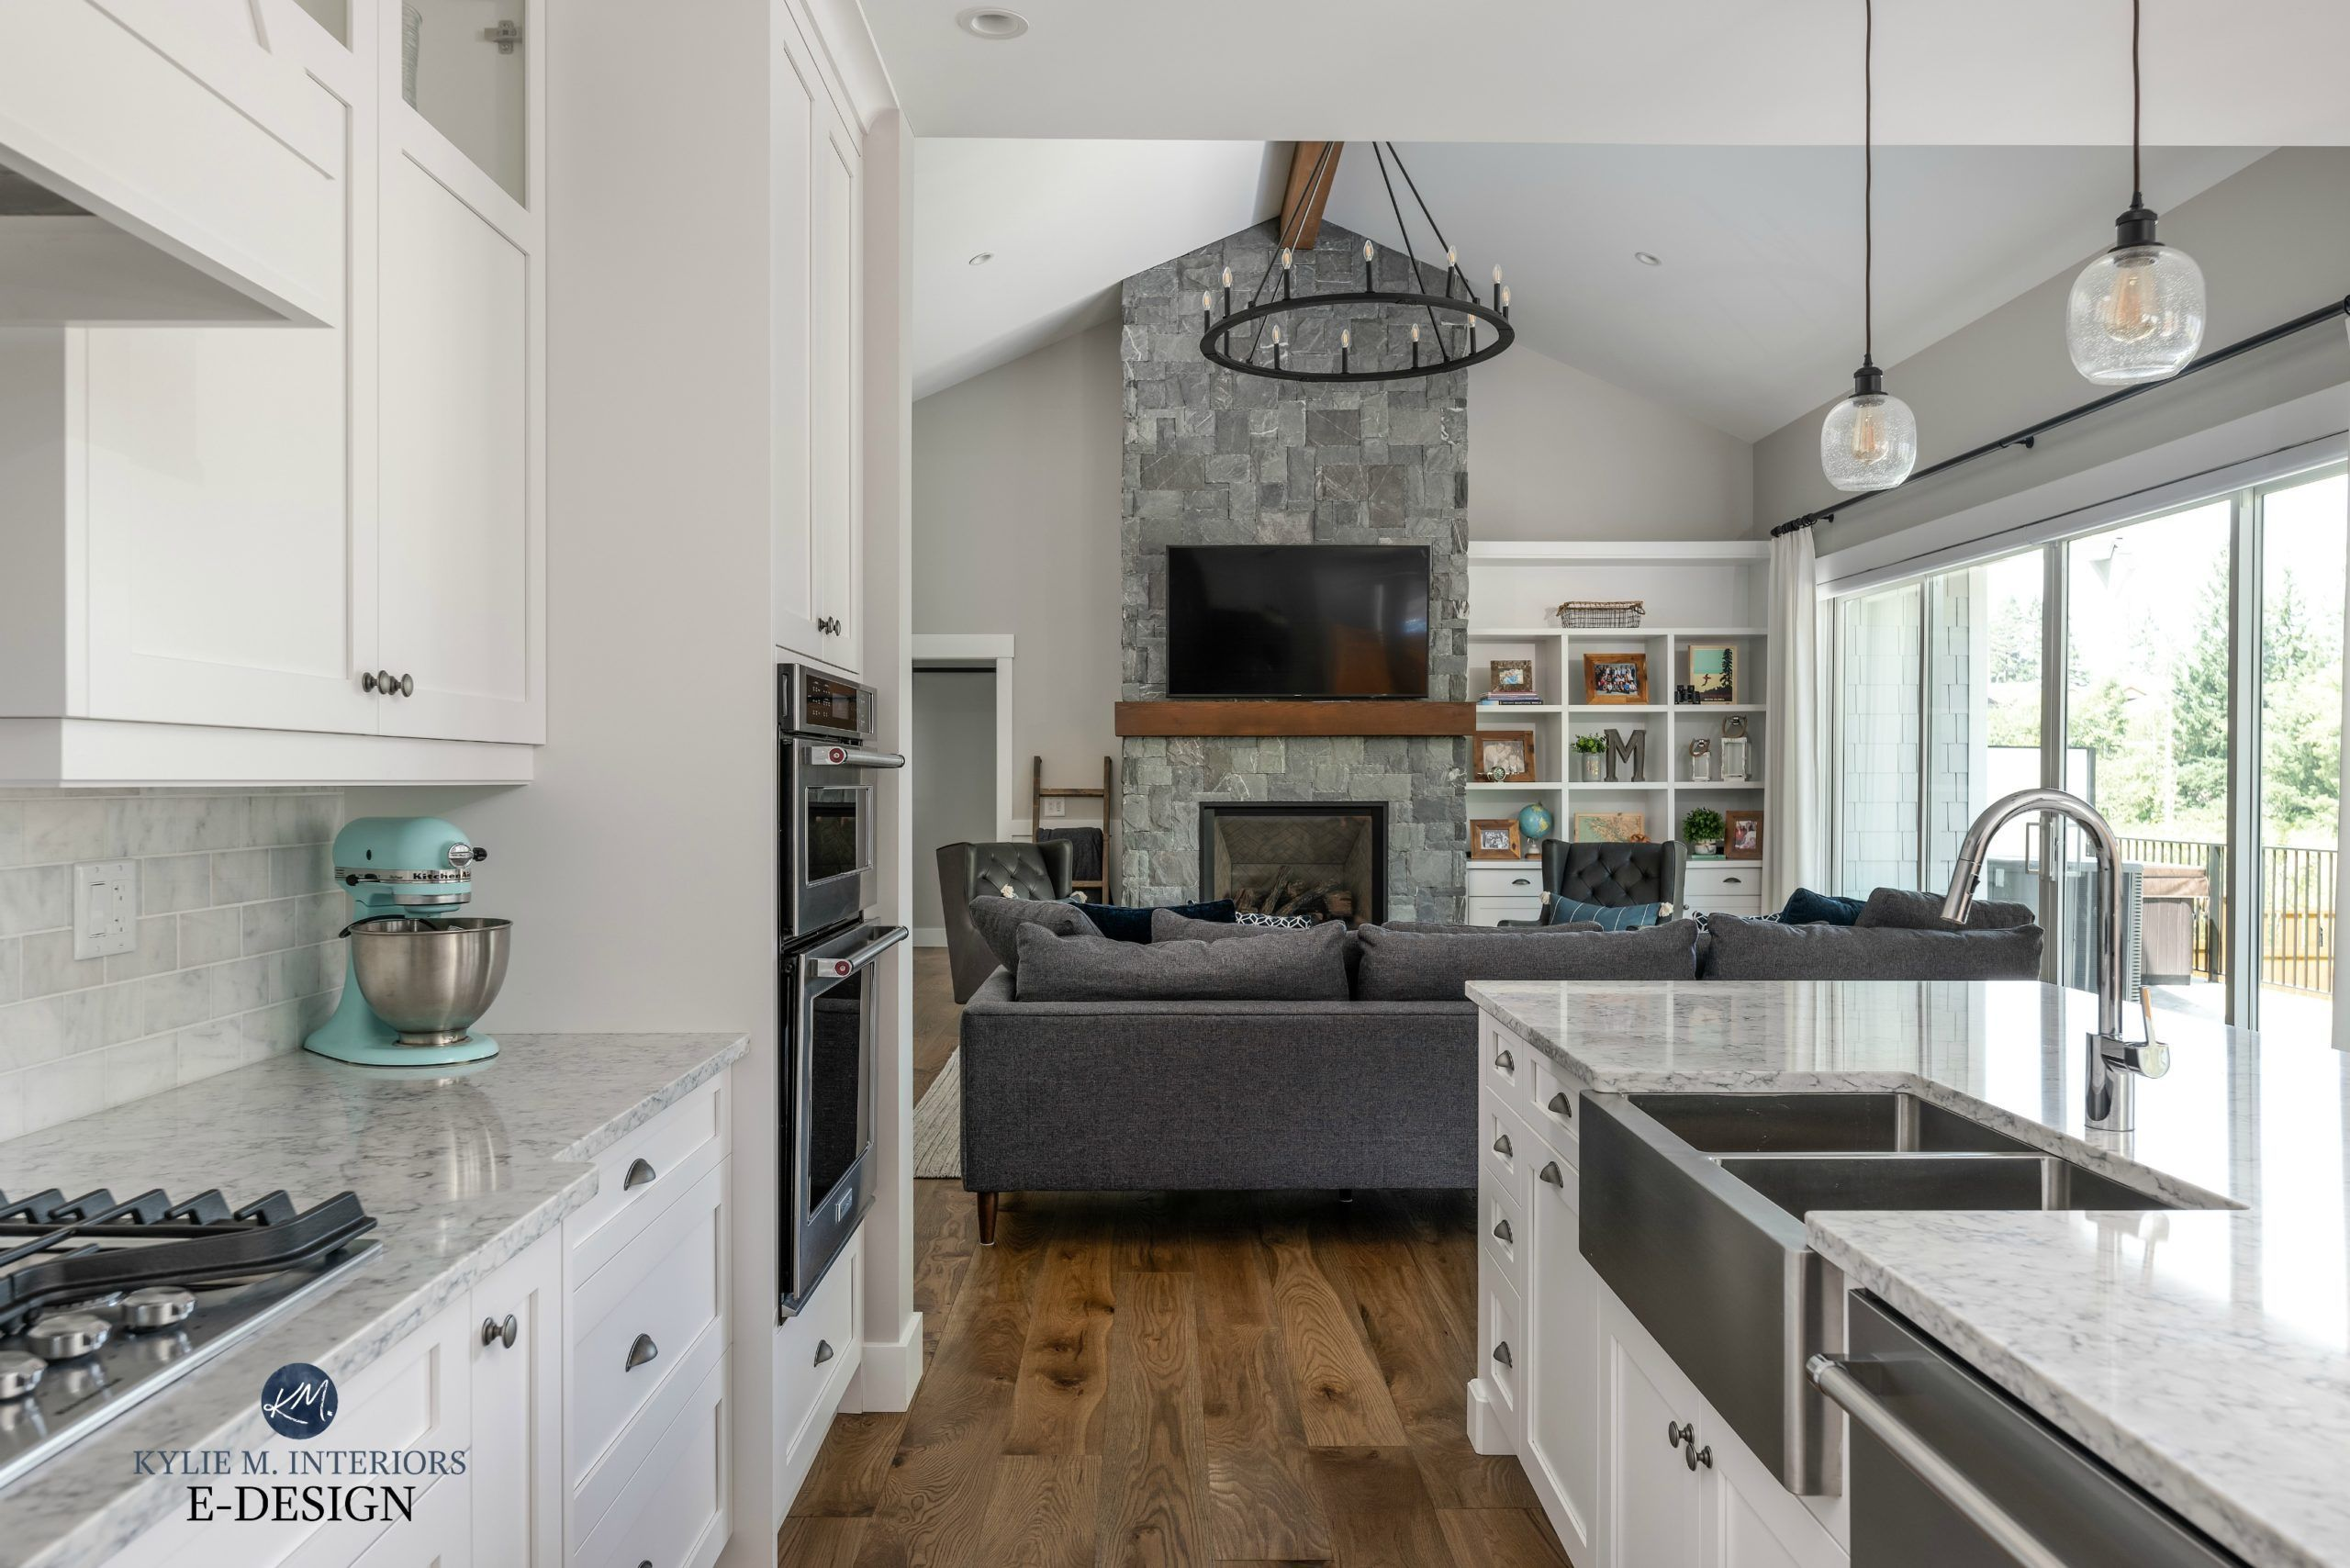 Open concept kitchen and living room, Stonington Gray, stone fireplace K2. Kylie M INteriors Edesign. Vaulted ceiling#ceiling #concept #edesign #fireplace #gray #interiors #kitchen #kylie #living #open #room #stone #stonington #vaulted